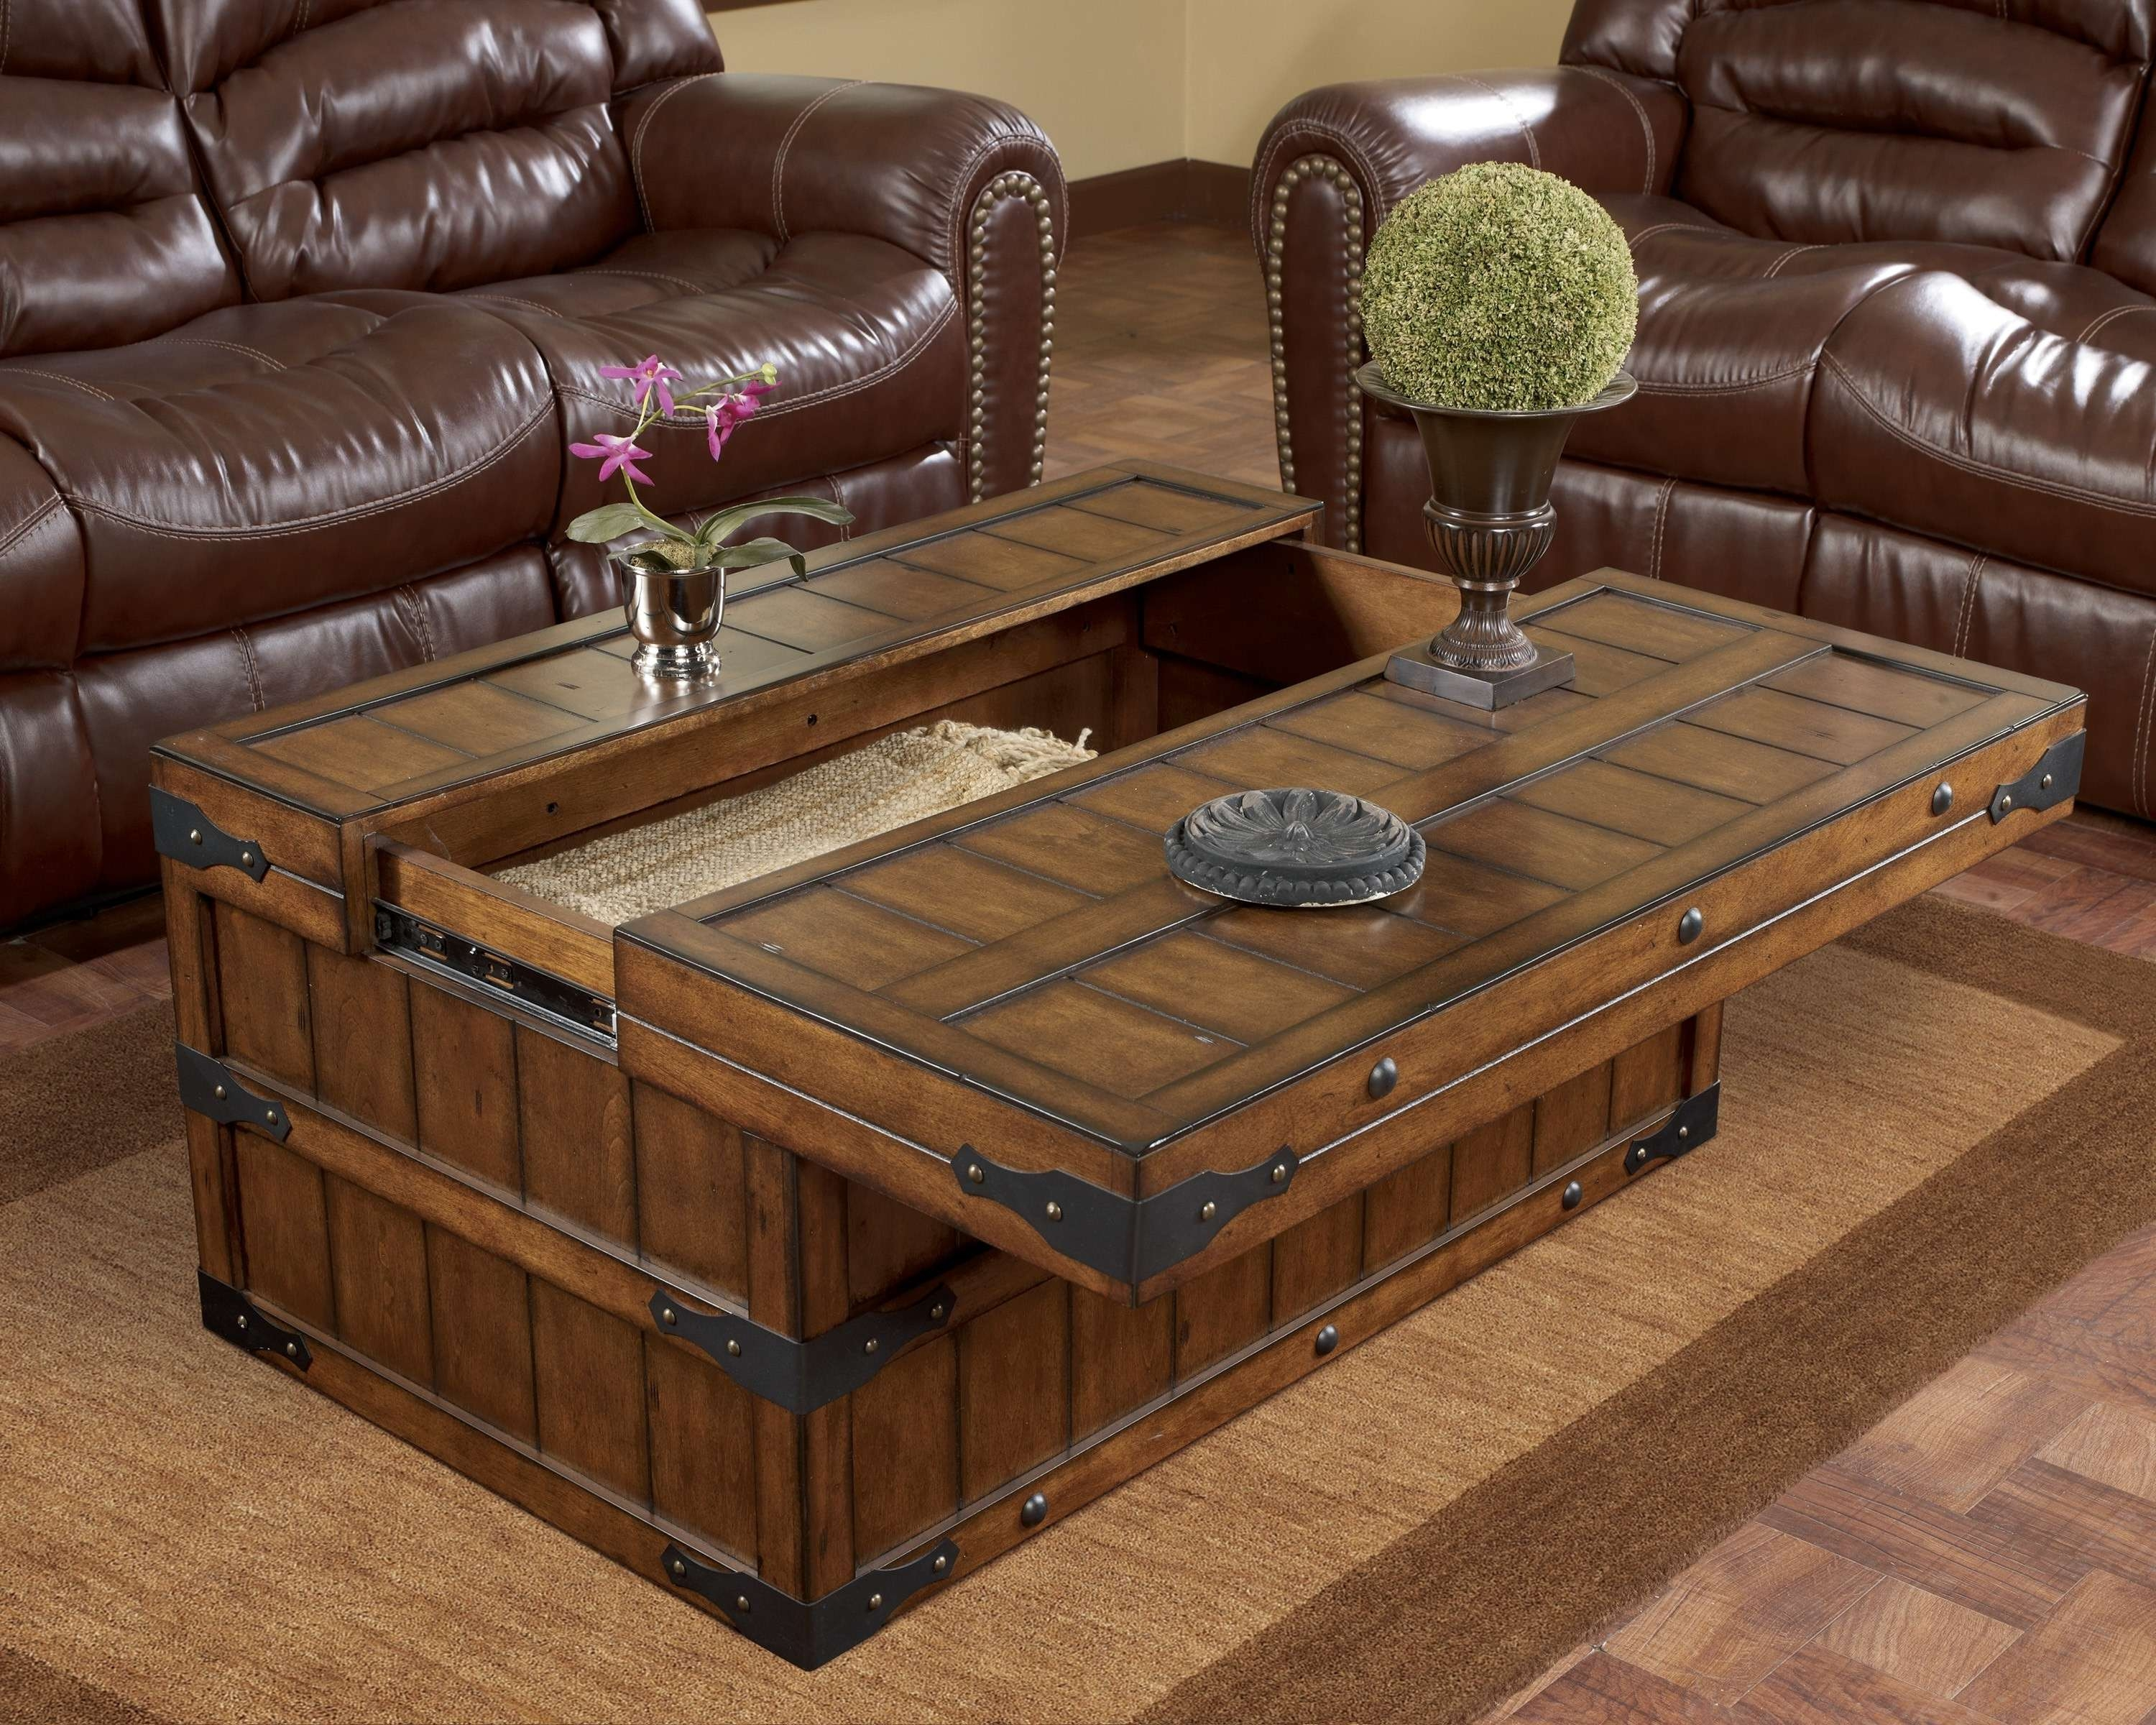 Well Known Coffee Tables With Baskets Underneath Throughout Coffee Table With Baskets Underneath / Coffee Tables / Thippo (View 18 of 20)